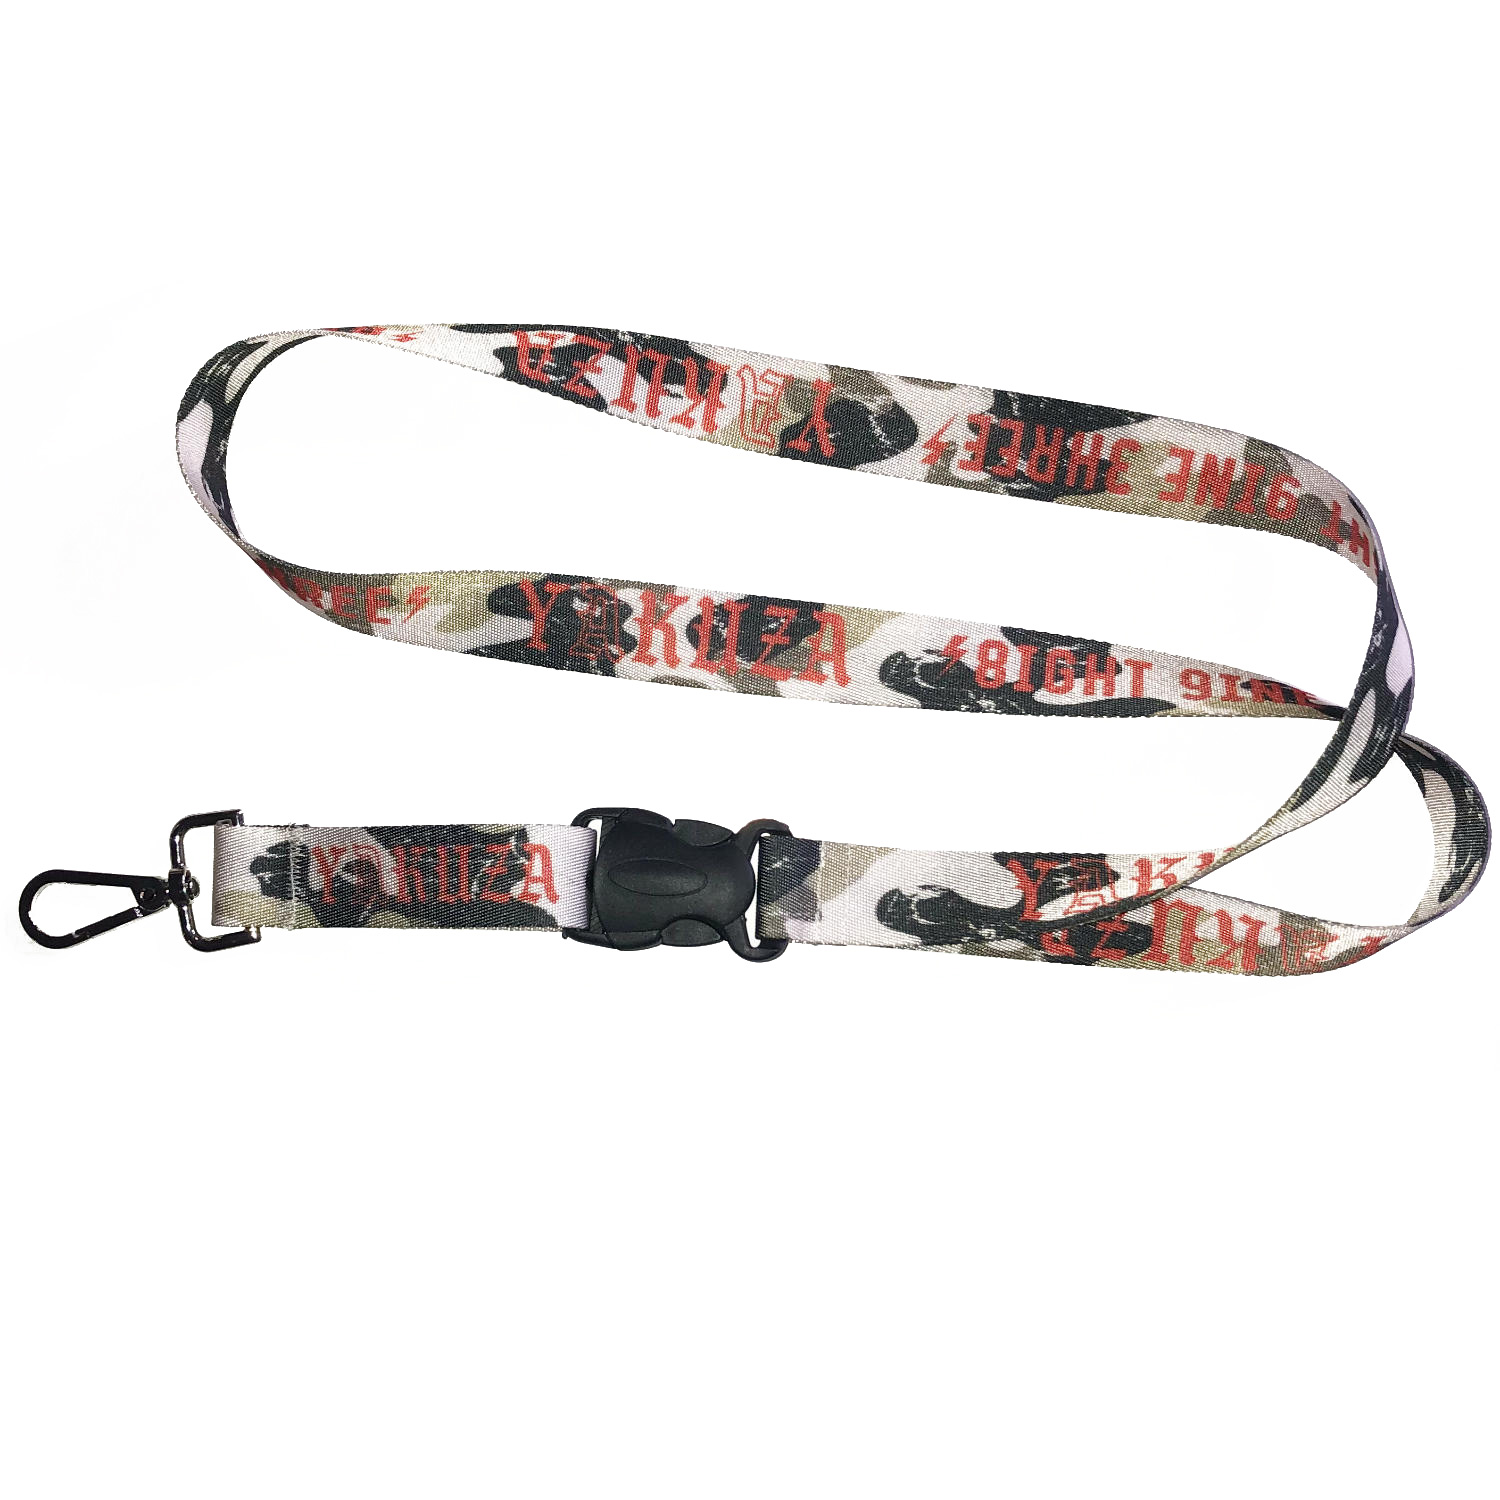 Yakuza, Lanyard 25-pack, SB1 CAM ONE 25-PACK